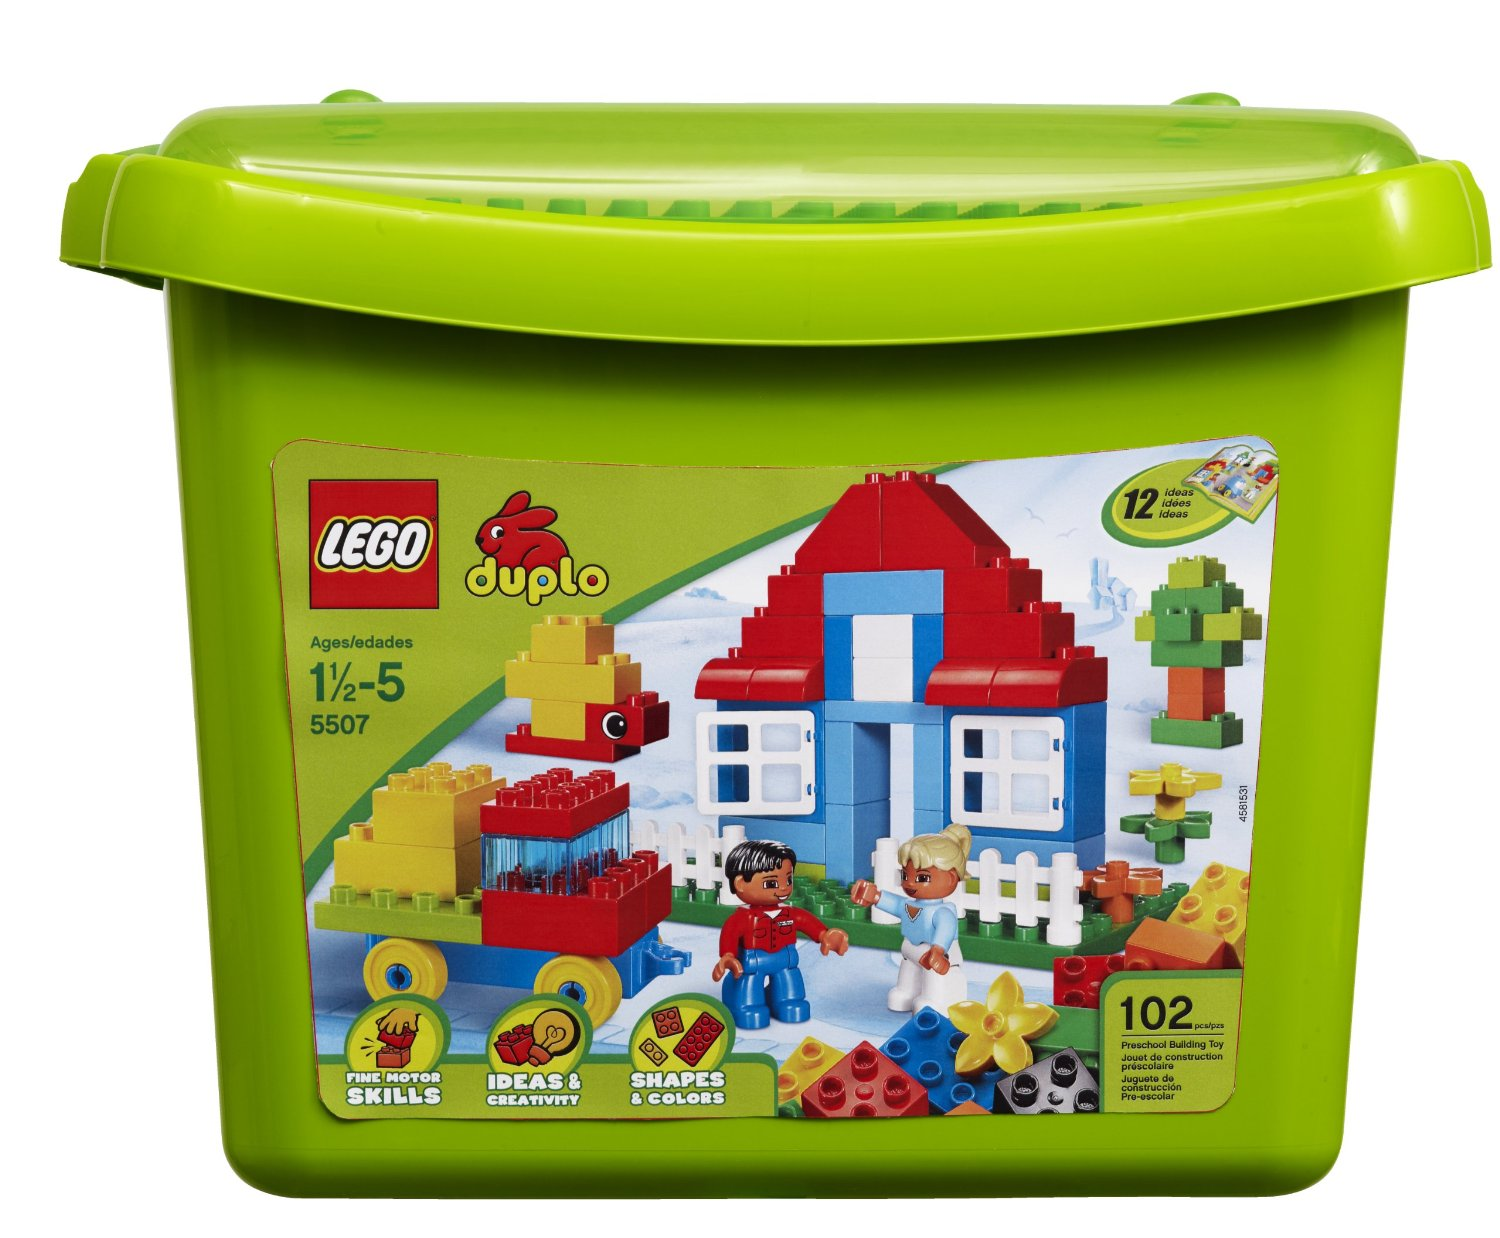 LEGO DUPLO Bricks & More Deluxe Brick Box 5507: LEGO DUPLO ...